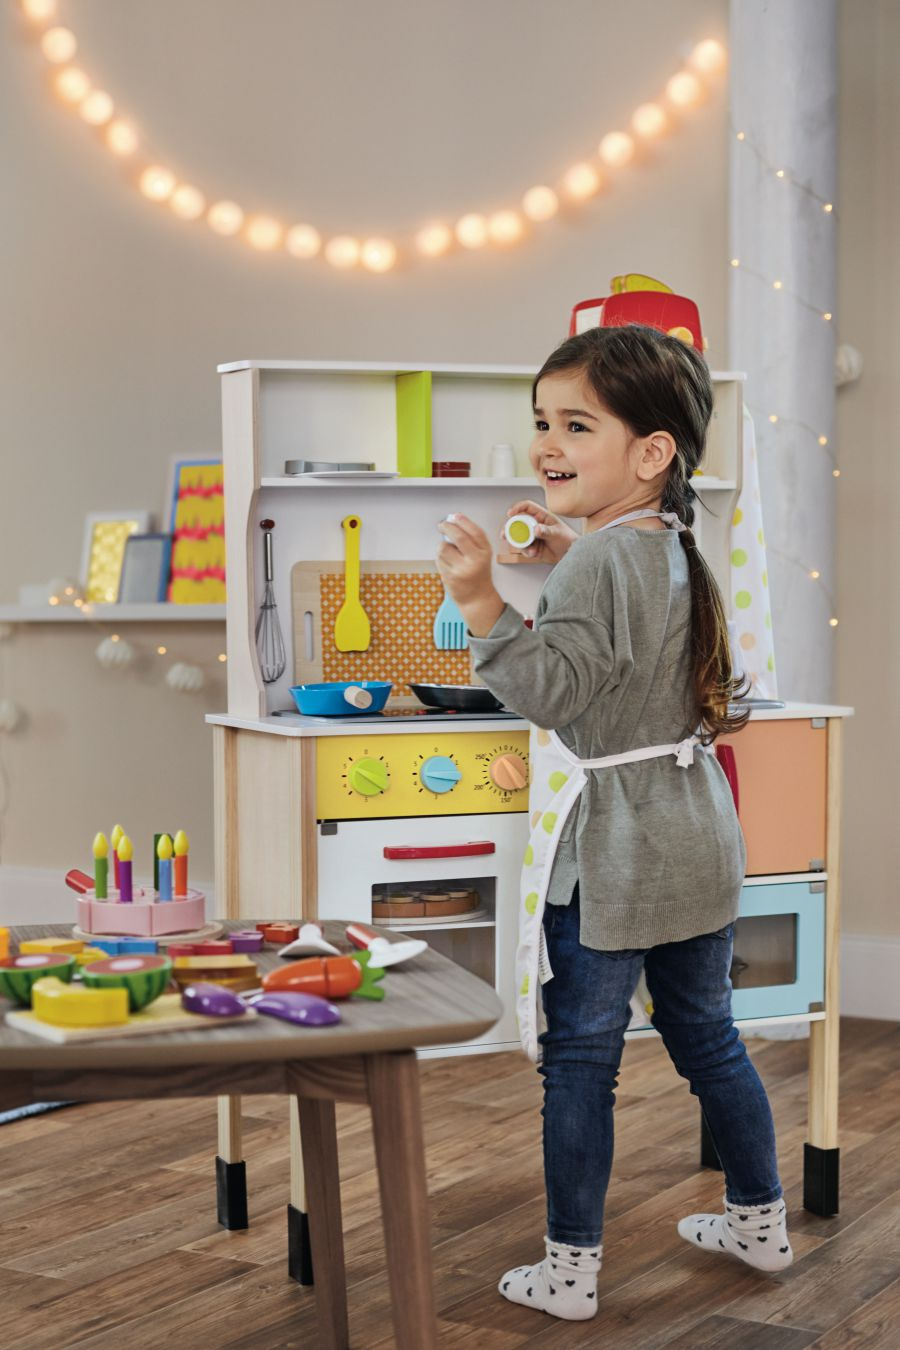 La Collection De Jouets En Bois De Chez Lidl So Workin